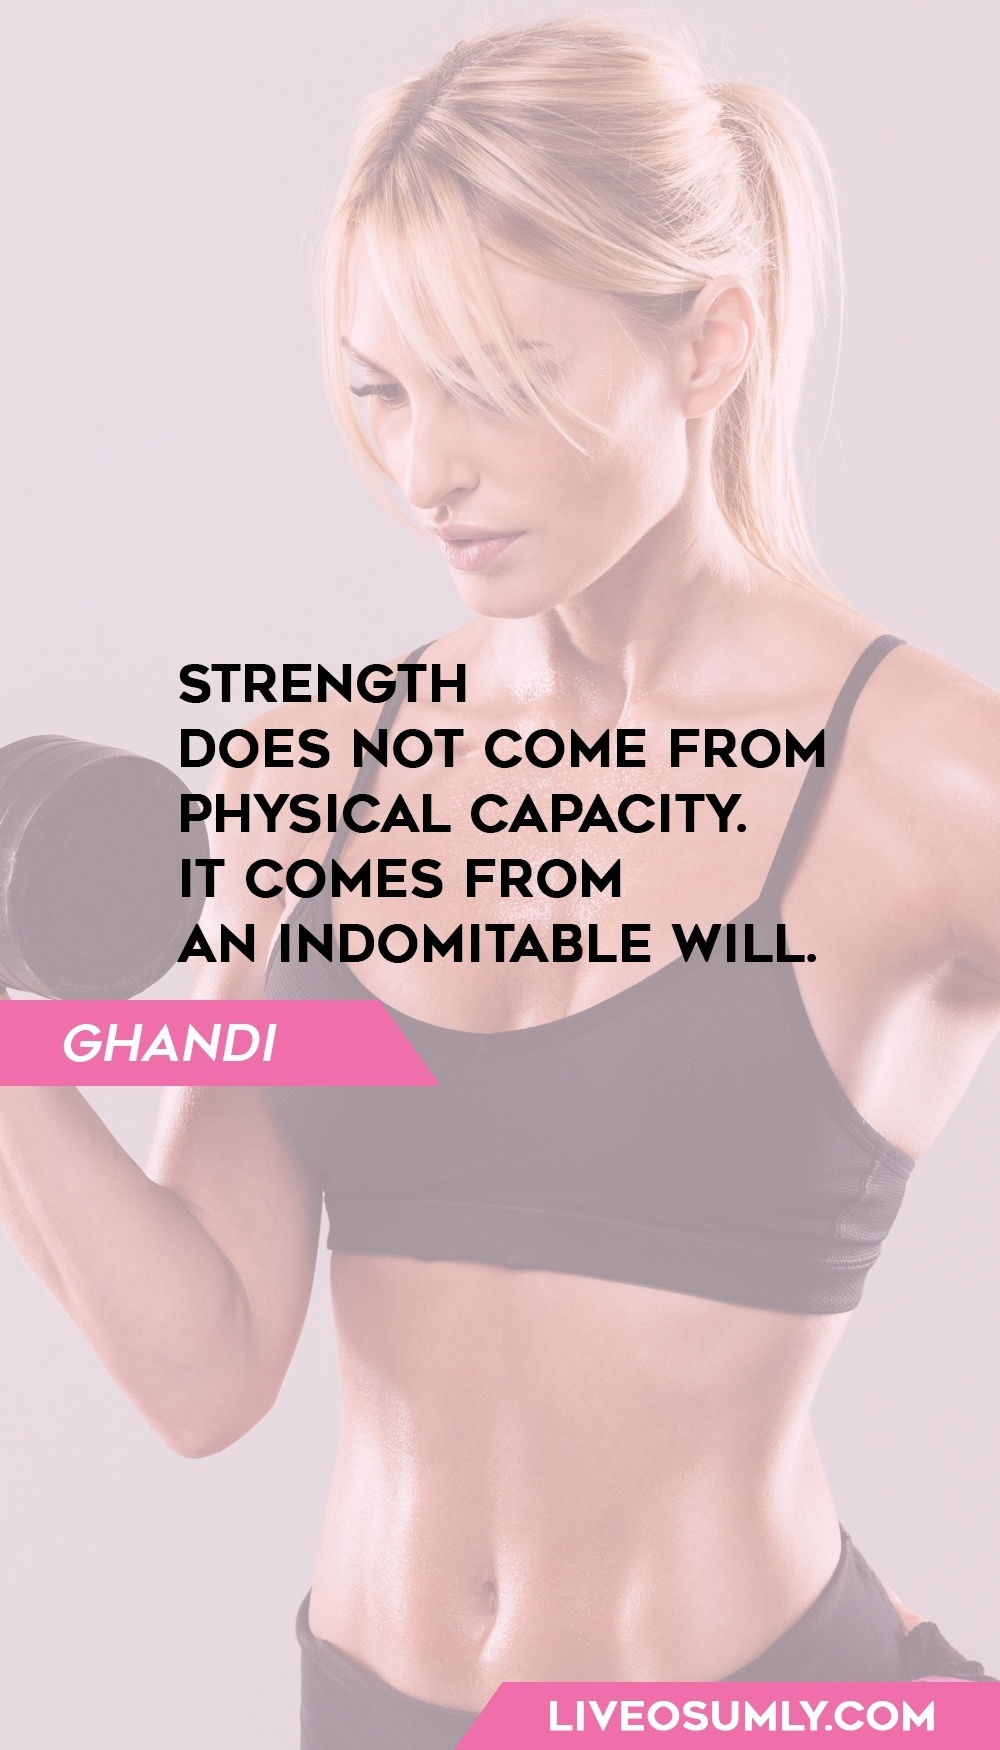 1. Ghandi Quotes on Fitness